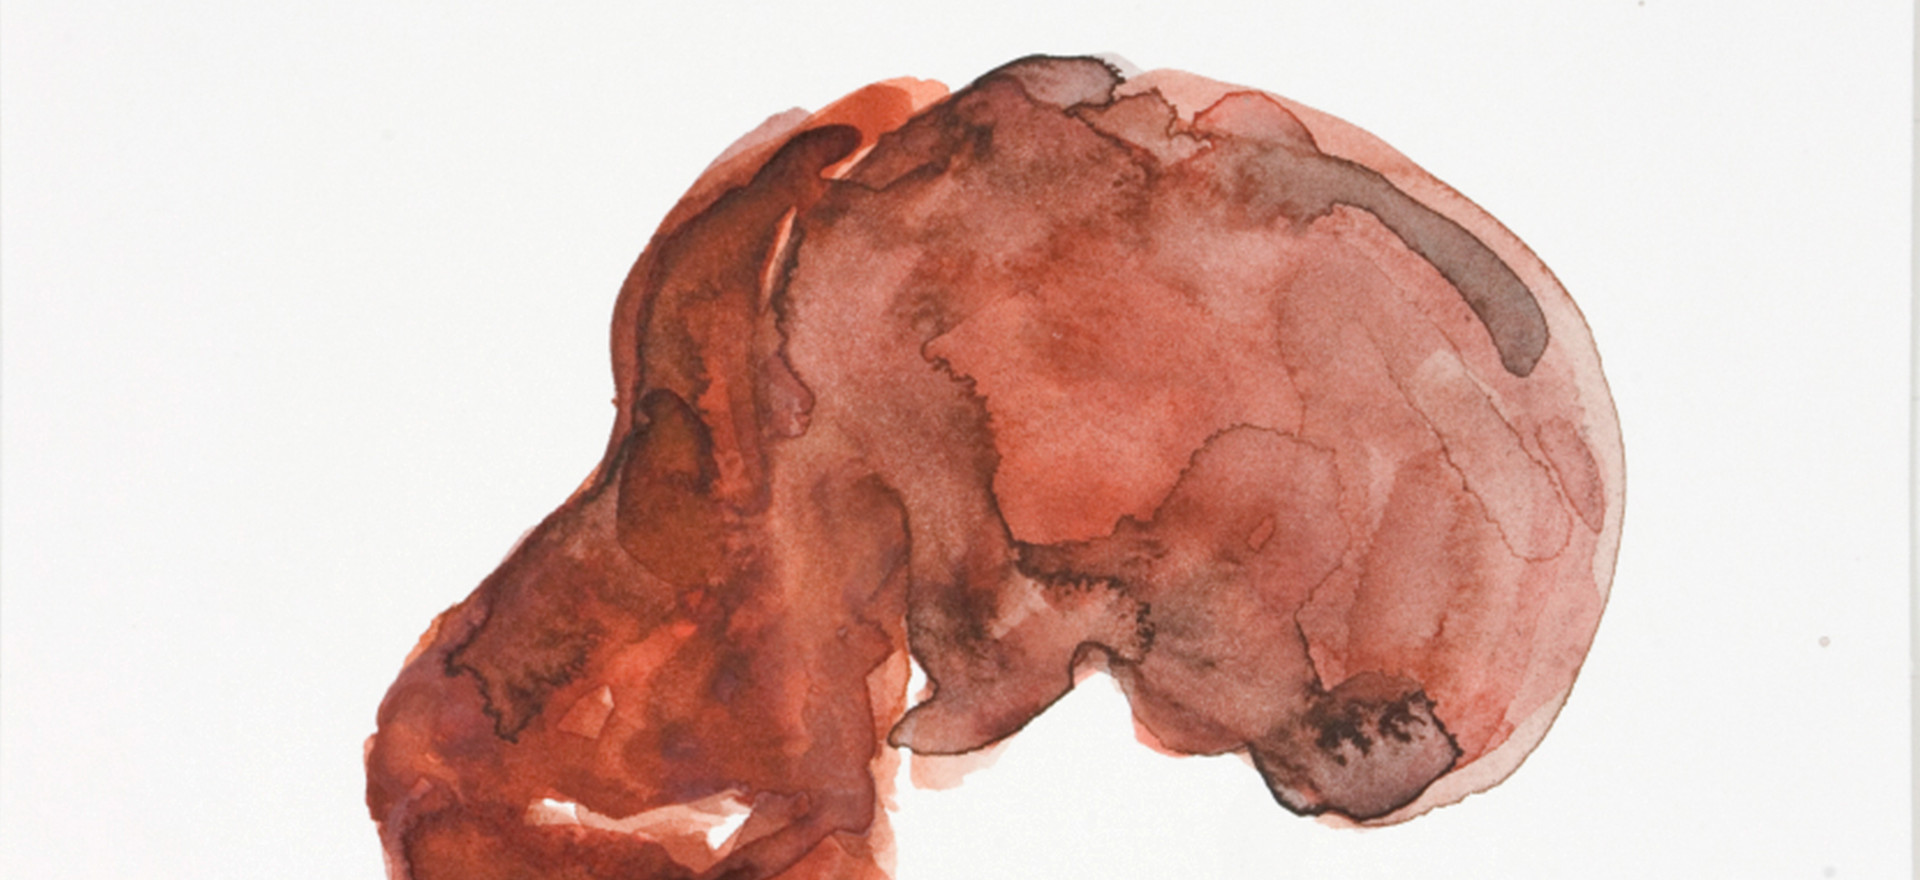 'Skull series (Taung)', 2009, watercolour on paper, 12.5 x 20 cm